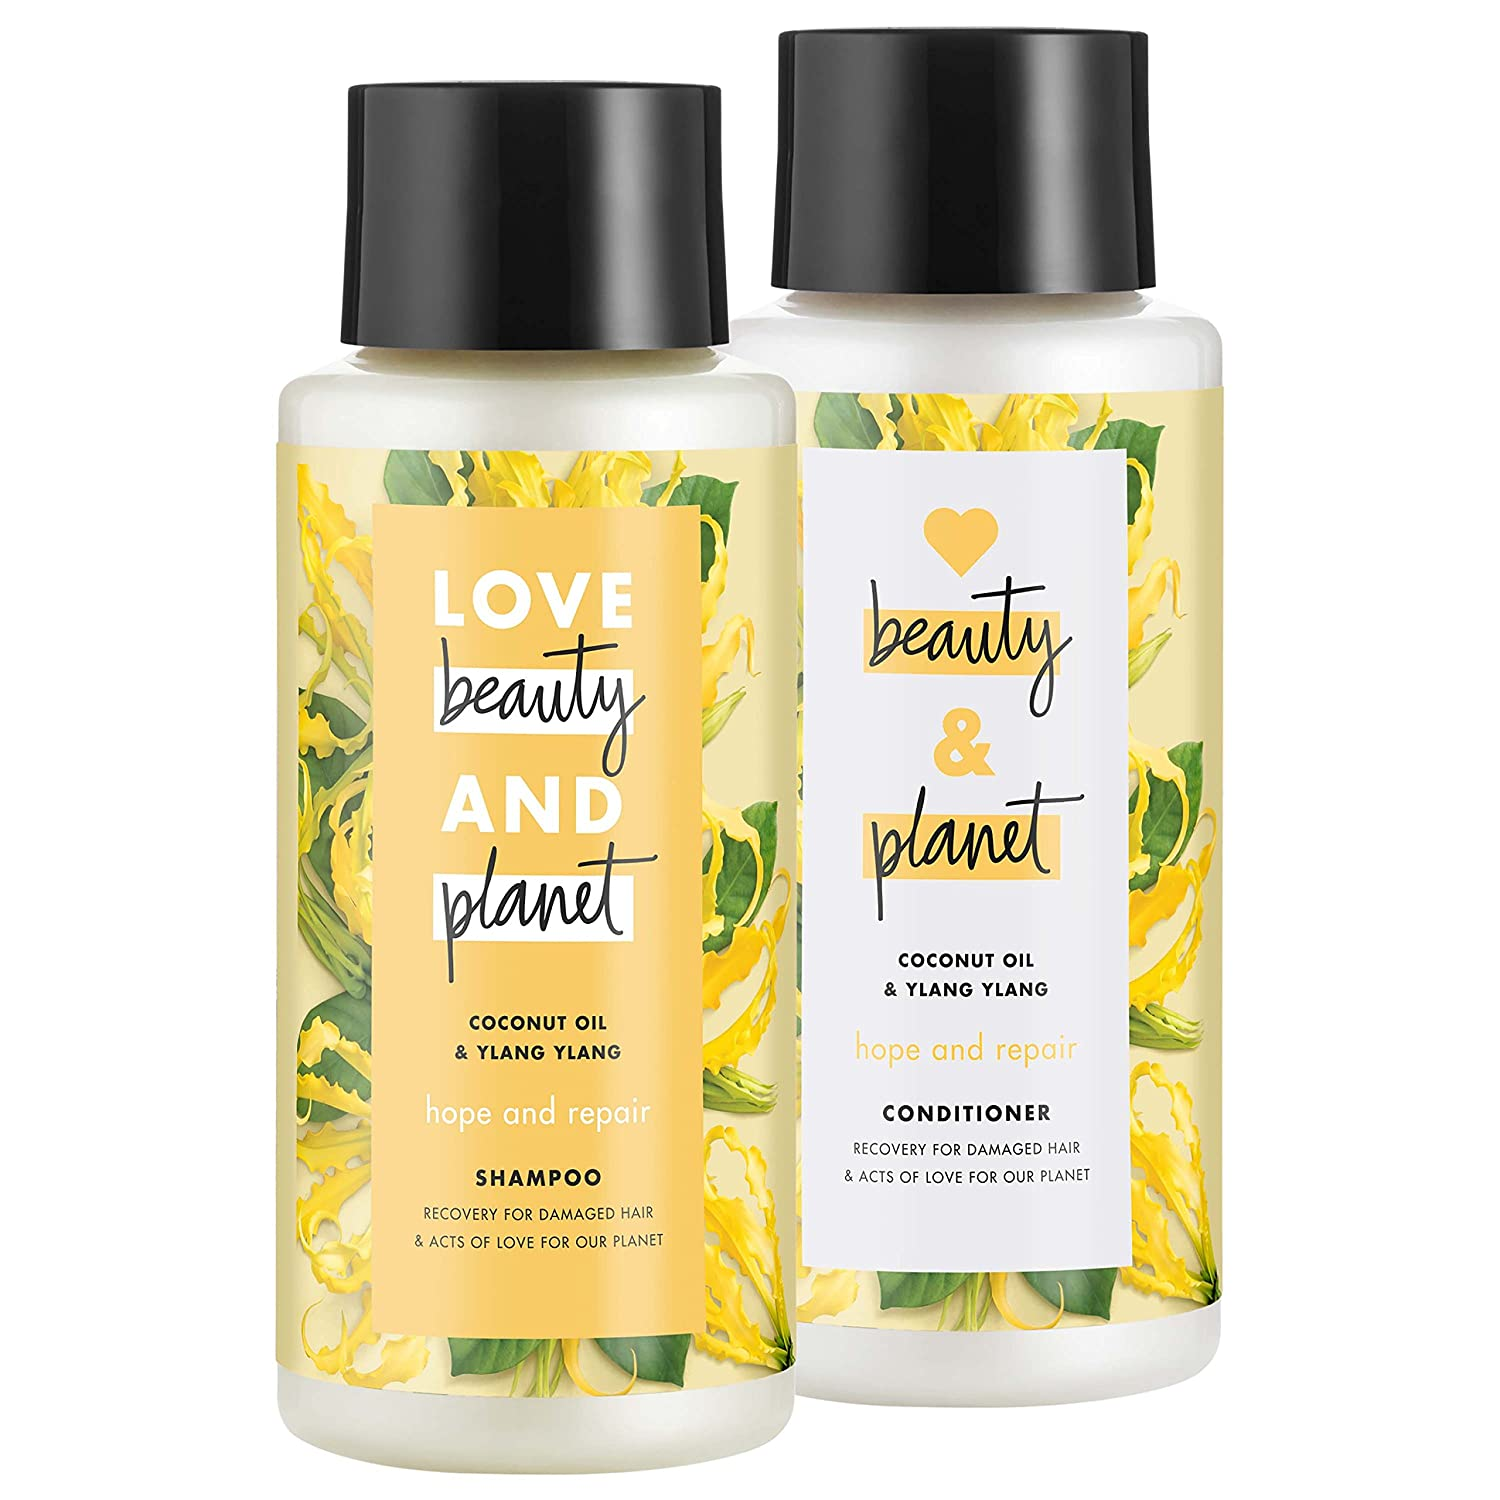 Lbp Hair Eco Friendly Shampoo And Conditioner